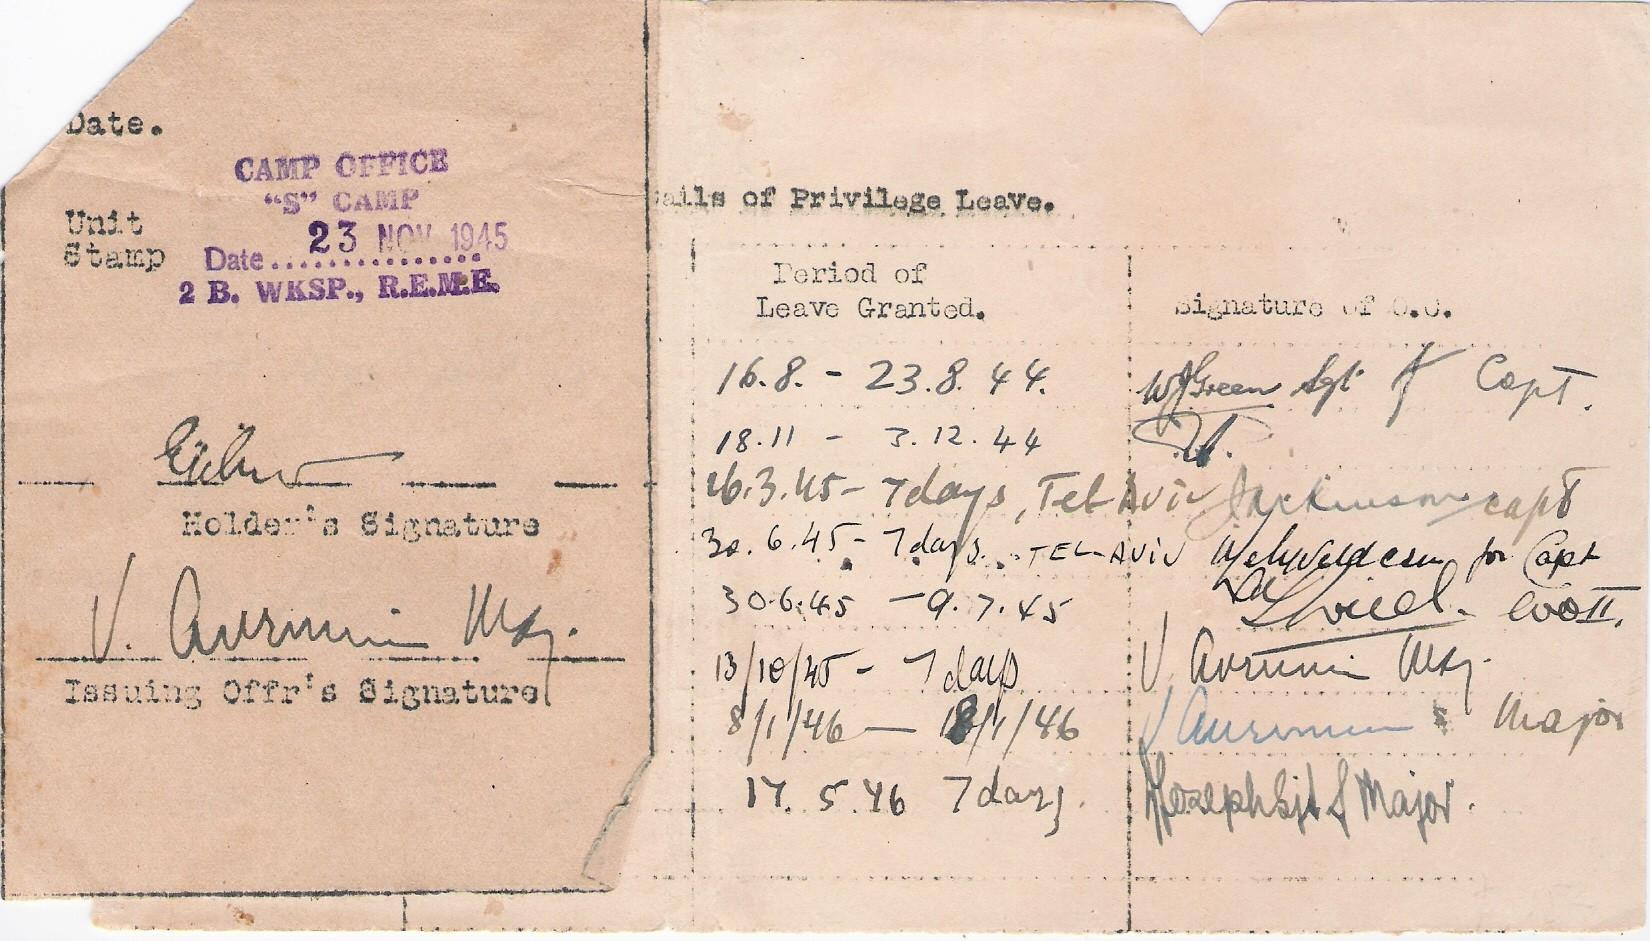 World War II Palestine leave pass for Jewish(?) soldier British Army